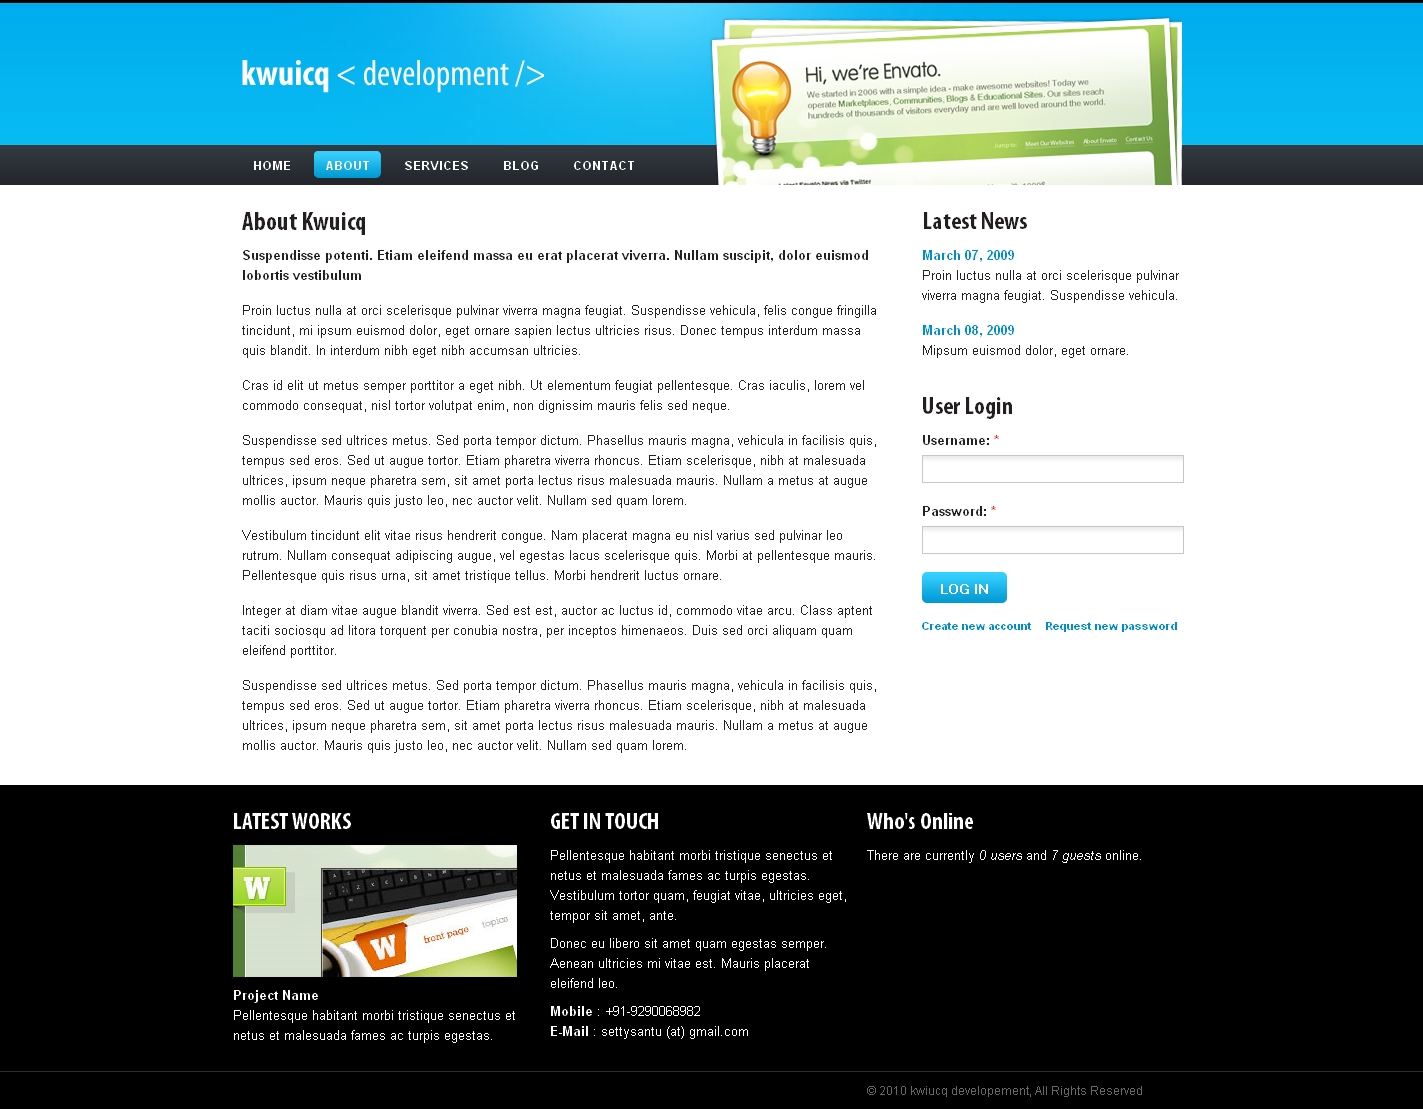 Kwuicq Drupal 6 Corporate Blue Theme